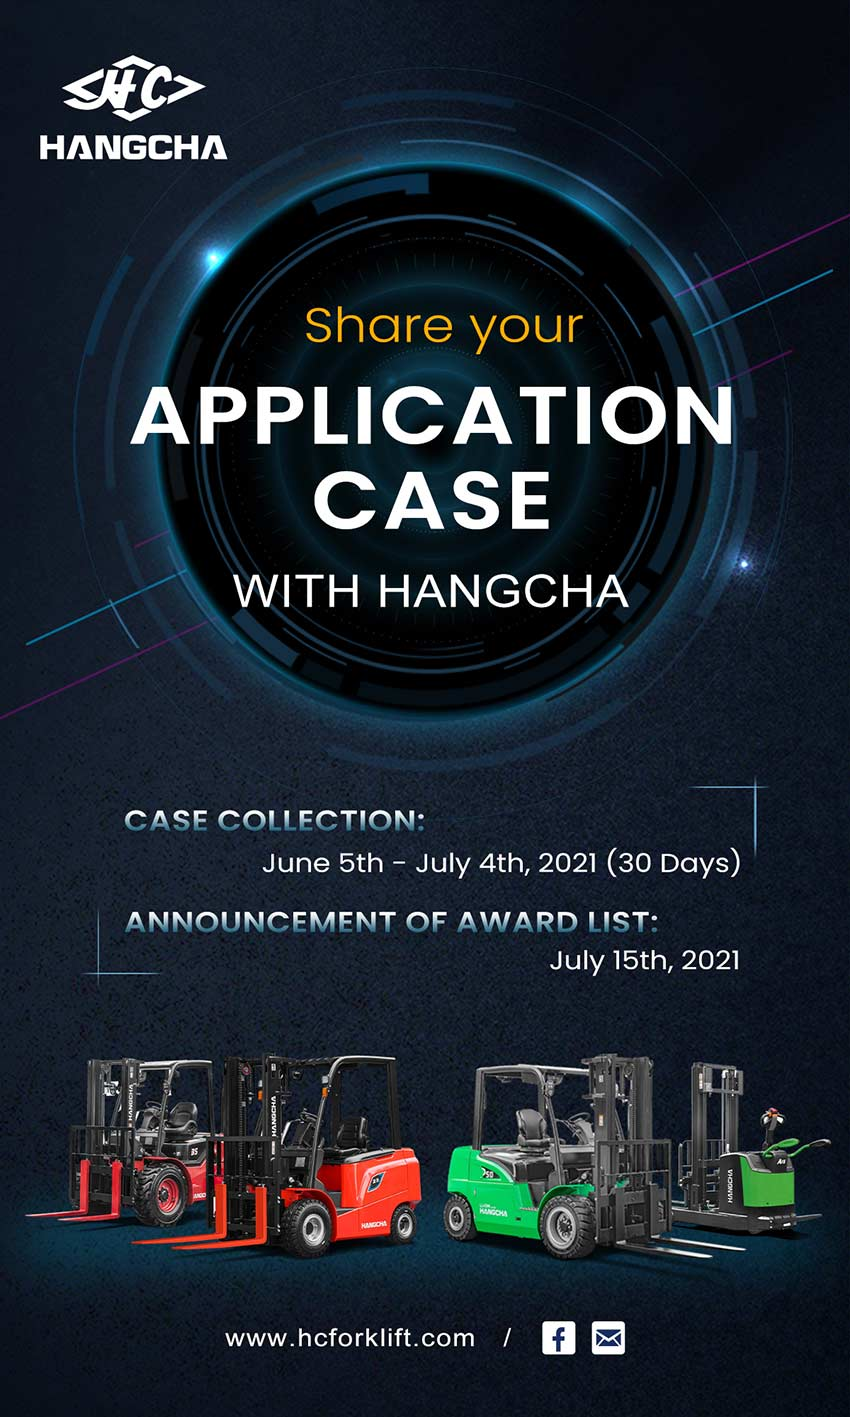 Share-your-application-case-with-#Hangcha-(2)